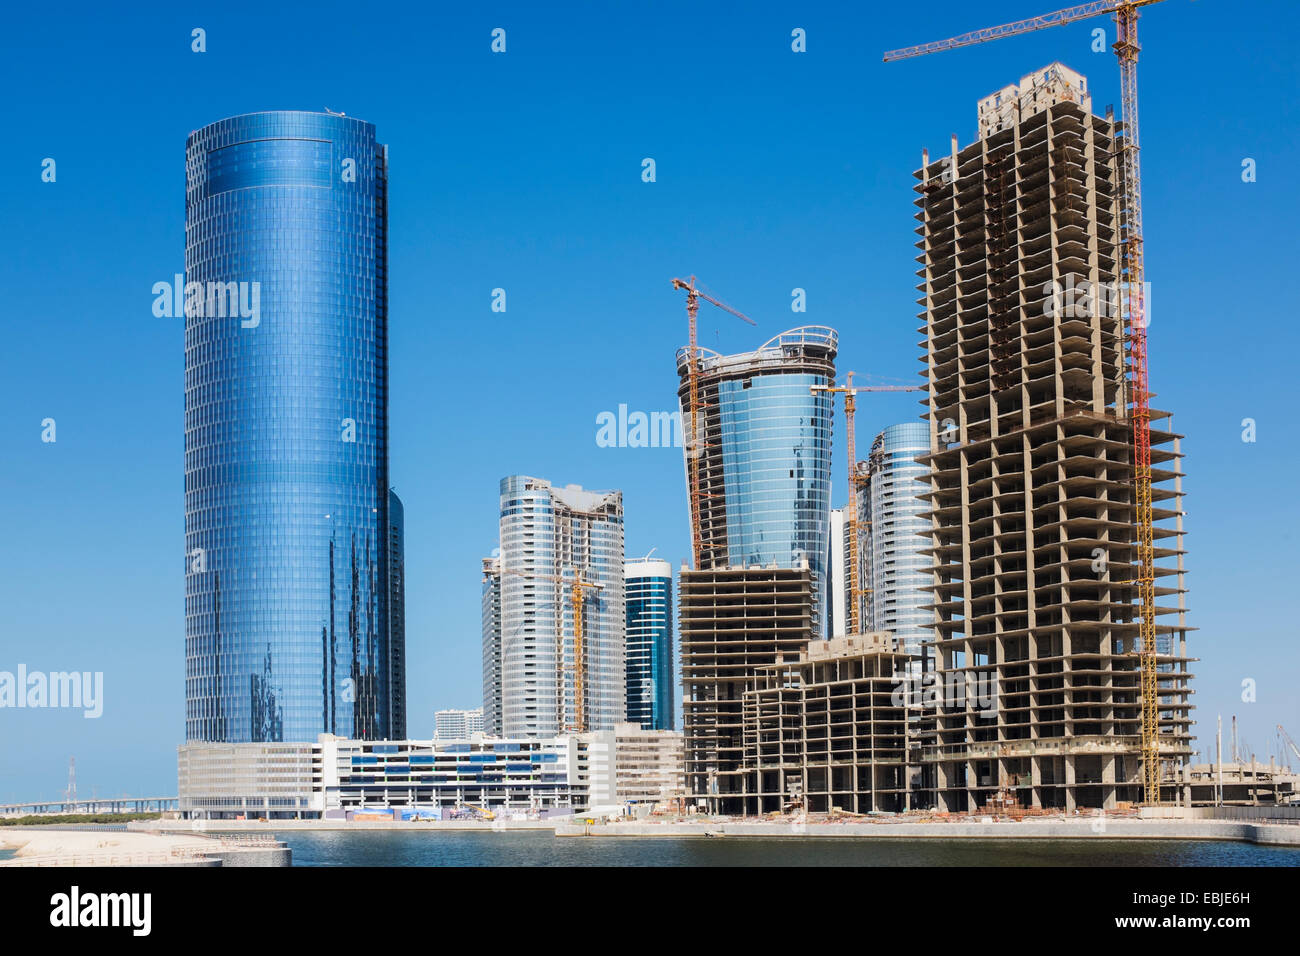 Modern high-rise residential and office buildings under construction at City of Lights on Al Reem Island in Abu - Stock Image